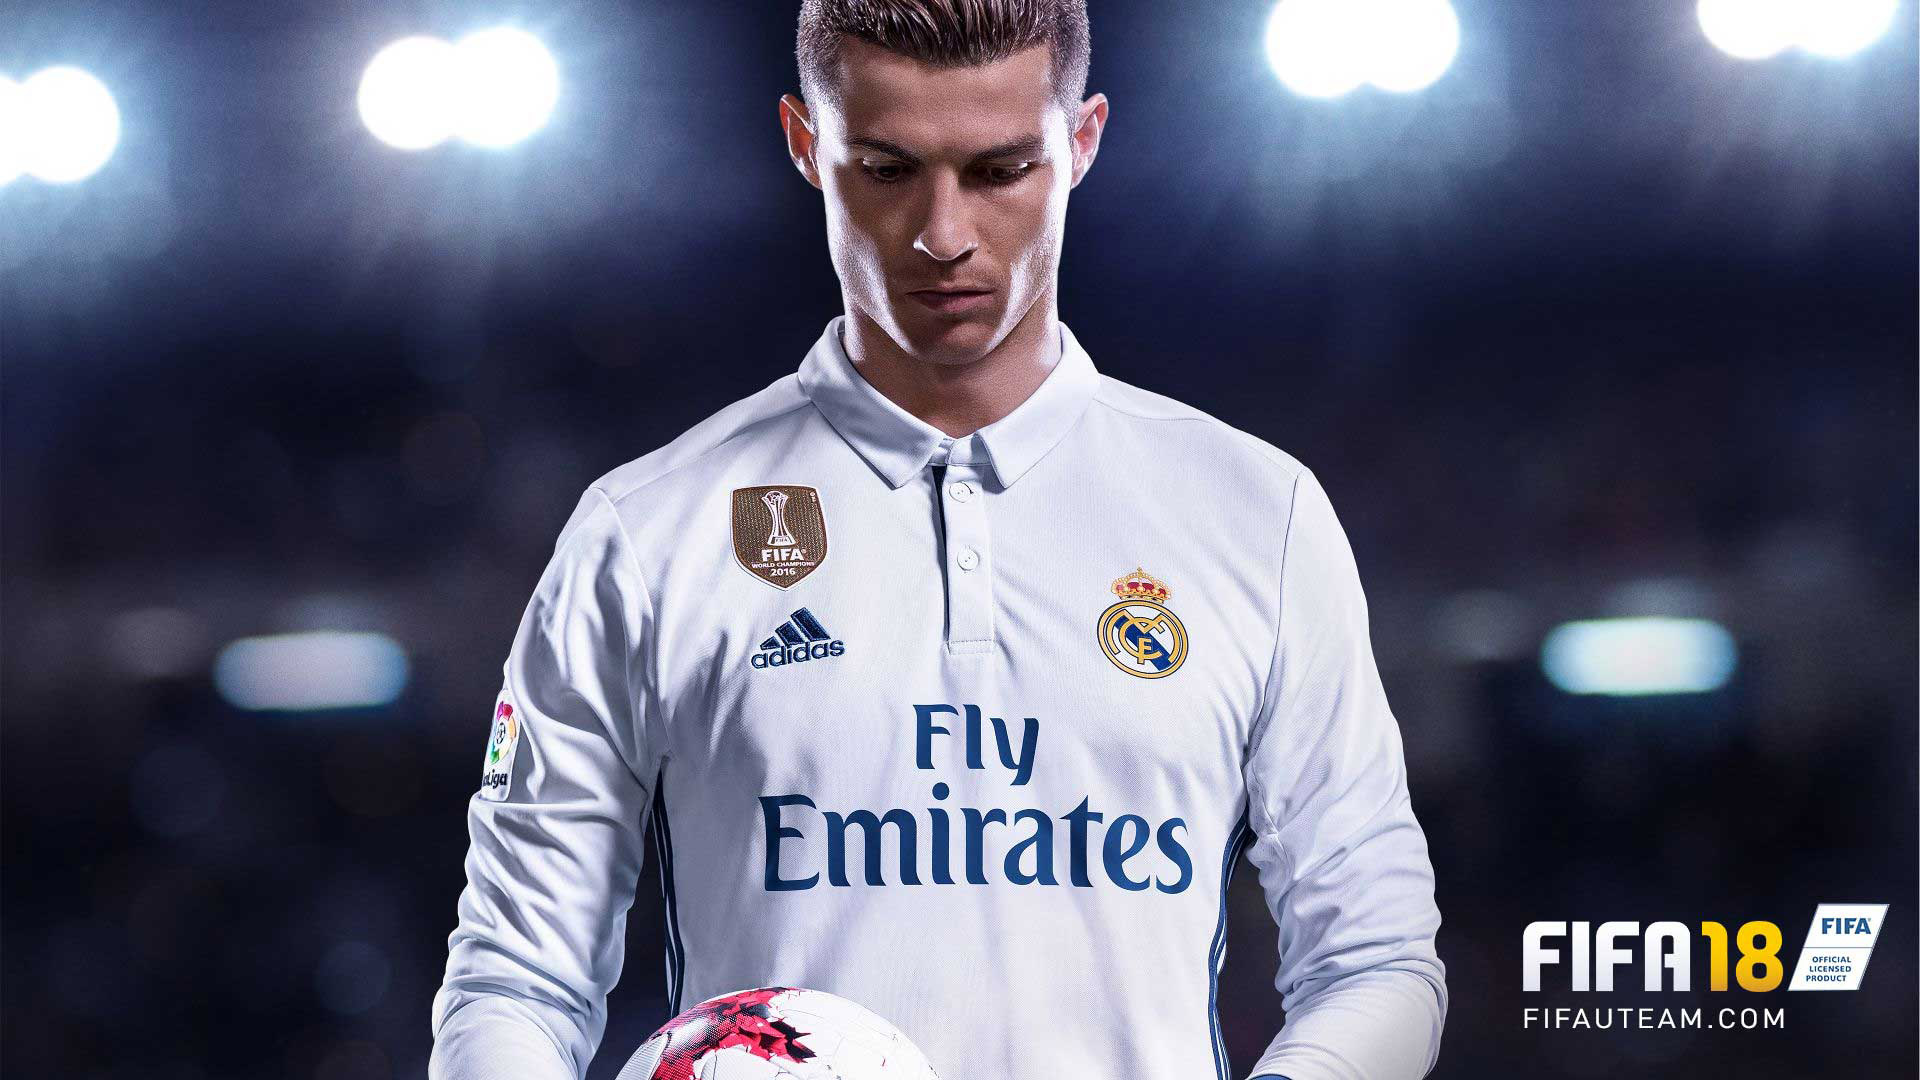 FIFA 18 Wallpaper in 1920x1080